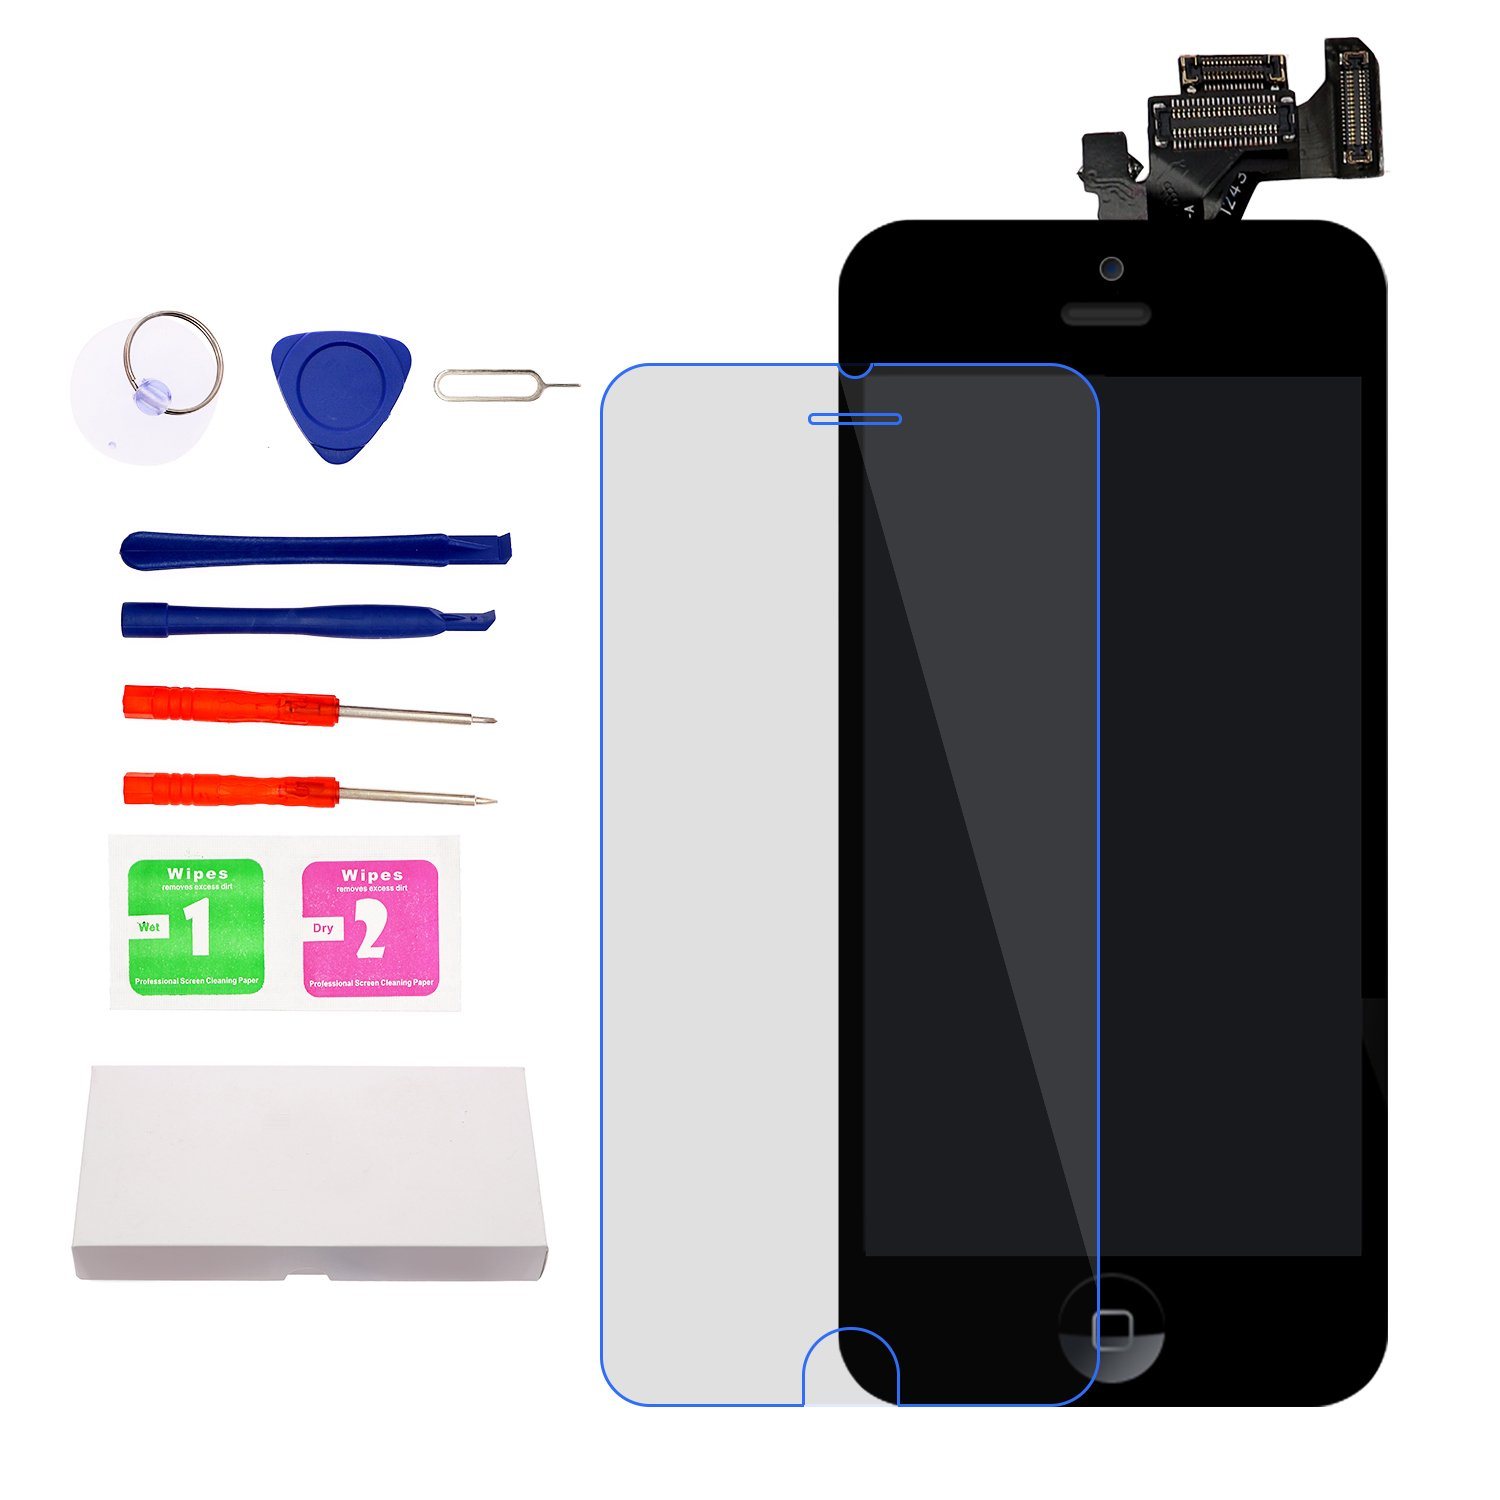 For iPhone 5 Screen Replacement With Home Button, Black- MAFIX Full Pre-assembly LCD Display Digitizer Touch Screen Kit Include Repair Tools & Screen Protector by MAFIX (Image #6)